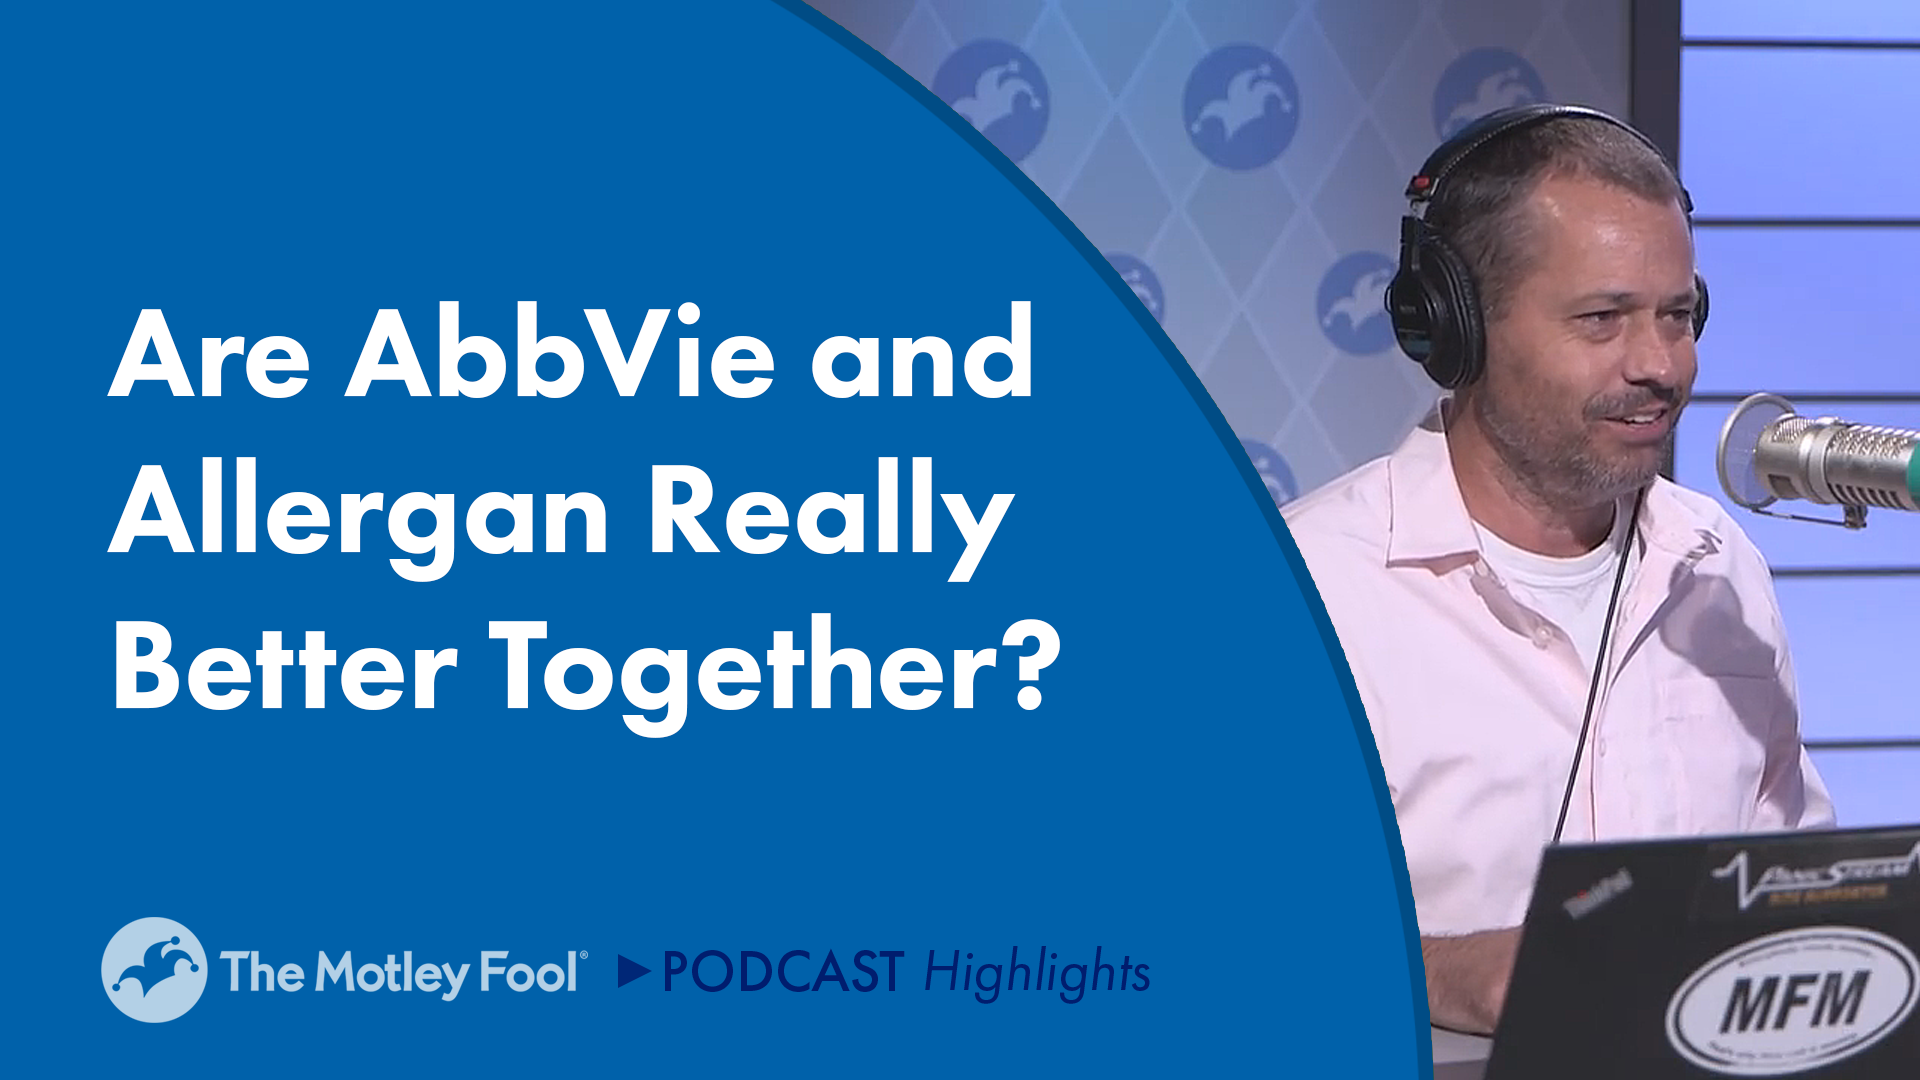 Are AbbVie and Allergan Really Better Together? -- The Motley Fool